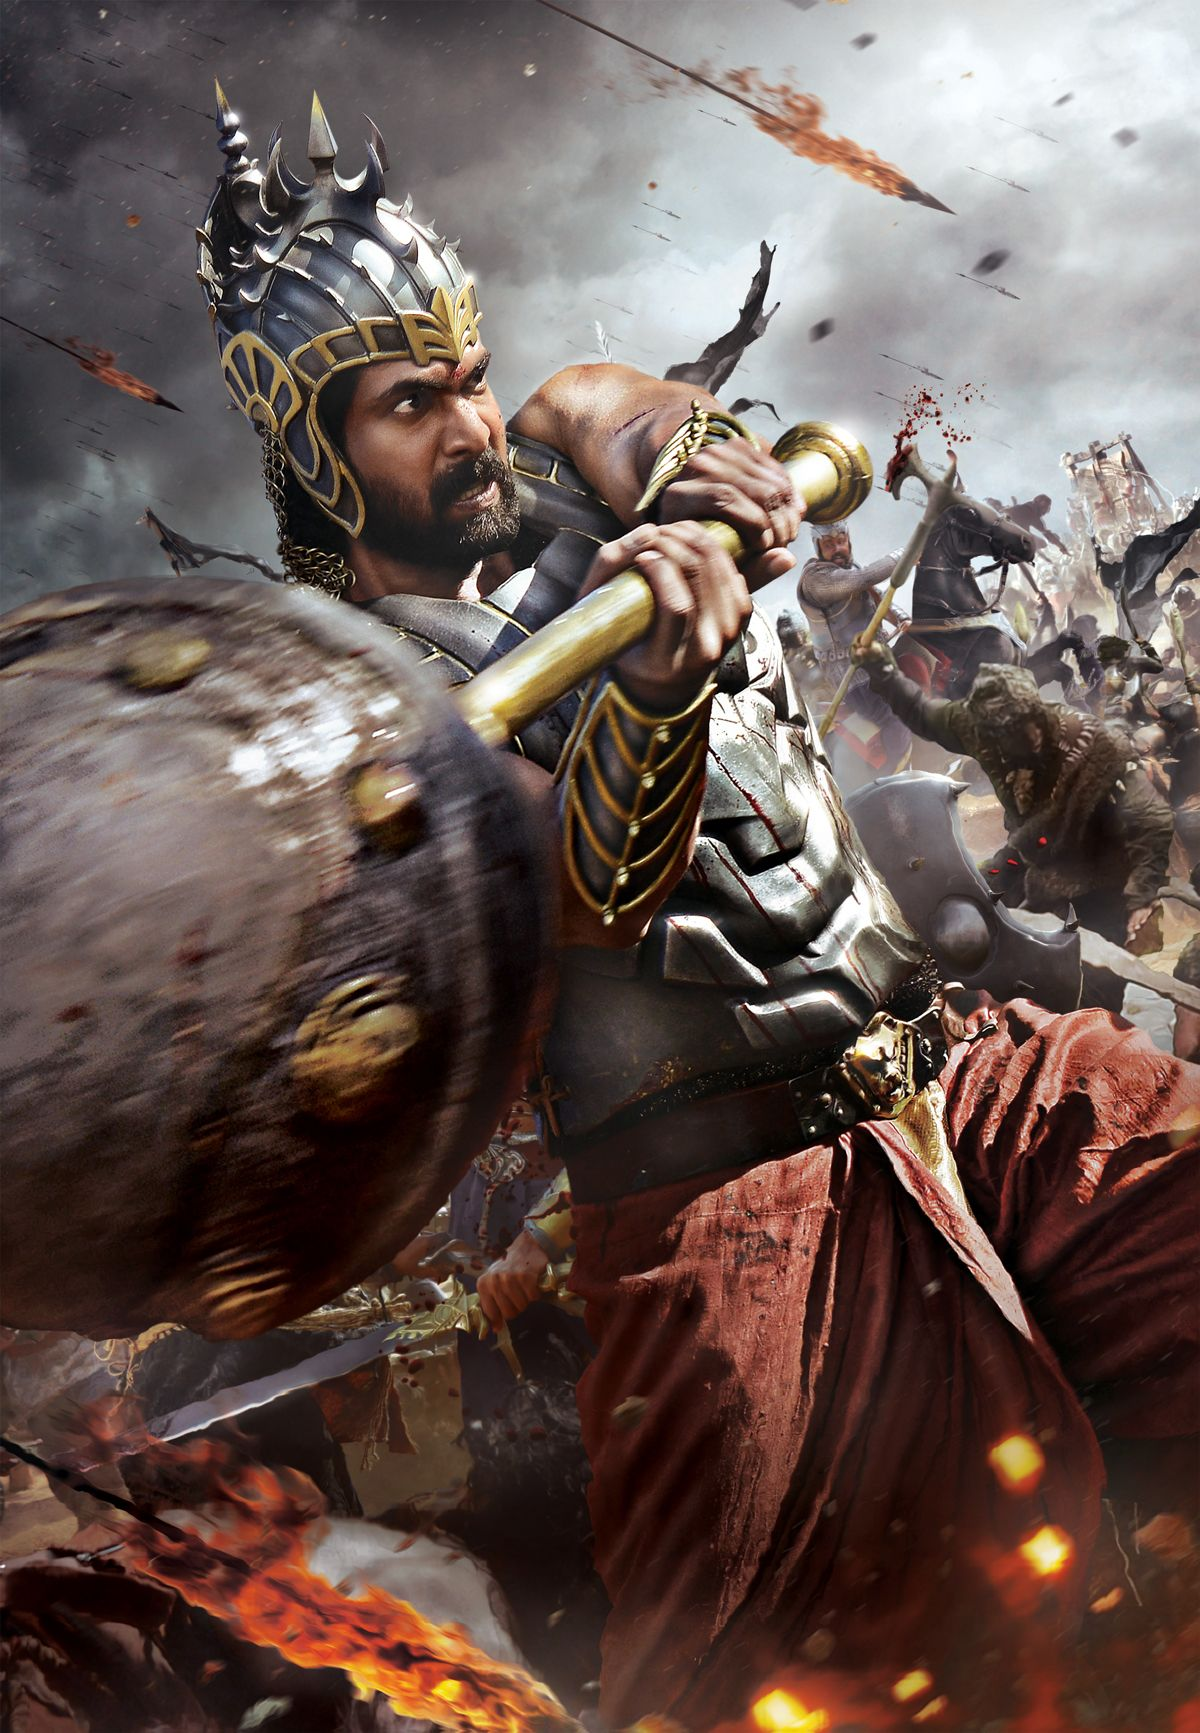 bahubali on behance | digital art amazing / www.larvagraphics